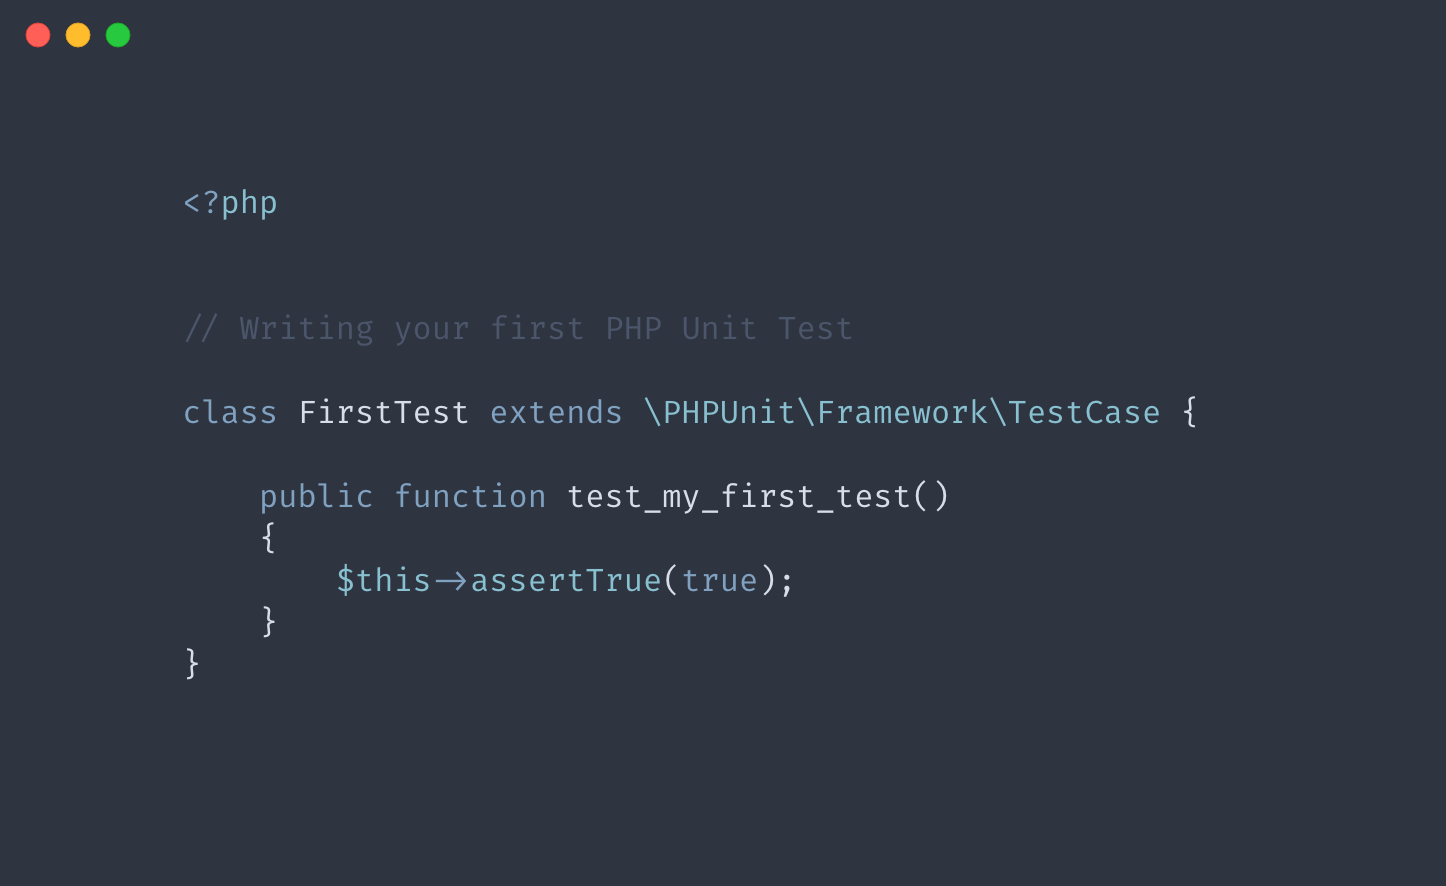 Writing your first PHP Unit Test | Learning PHPUnit - Part 2